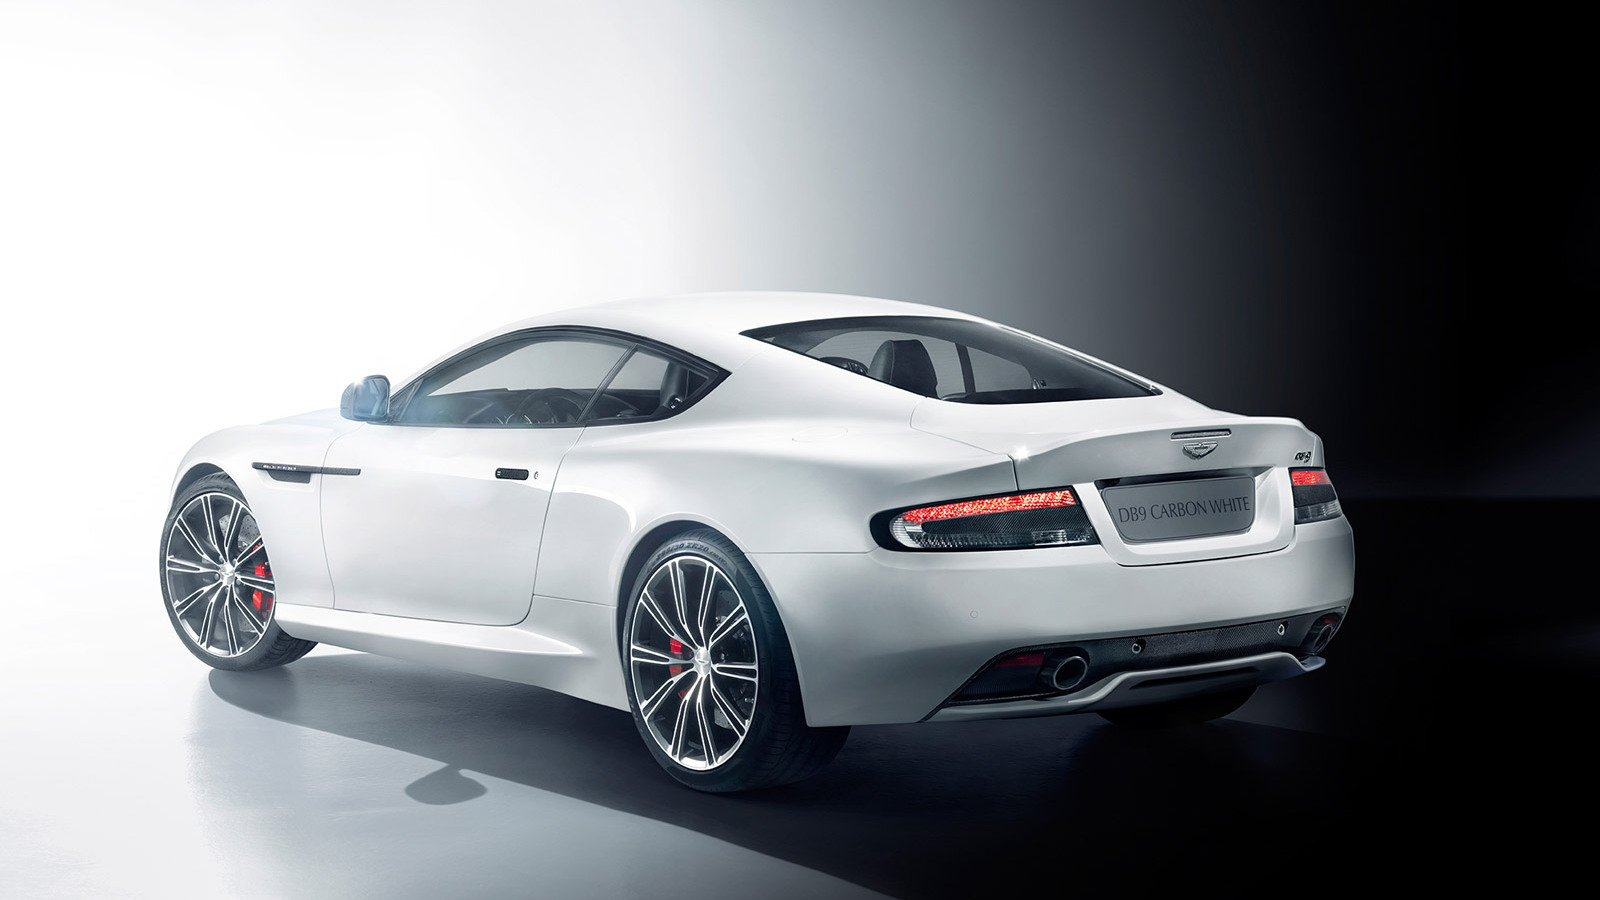 2015 Aston Martin DB9 Carbon White